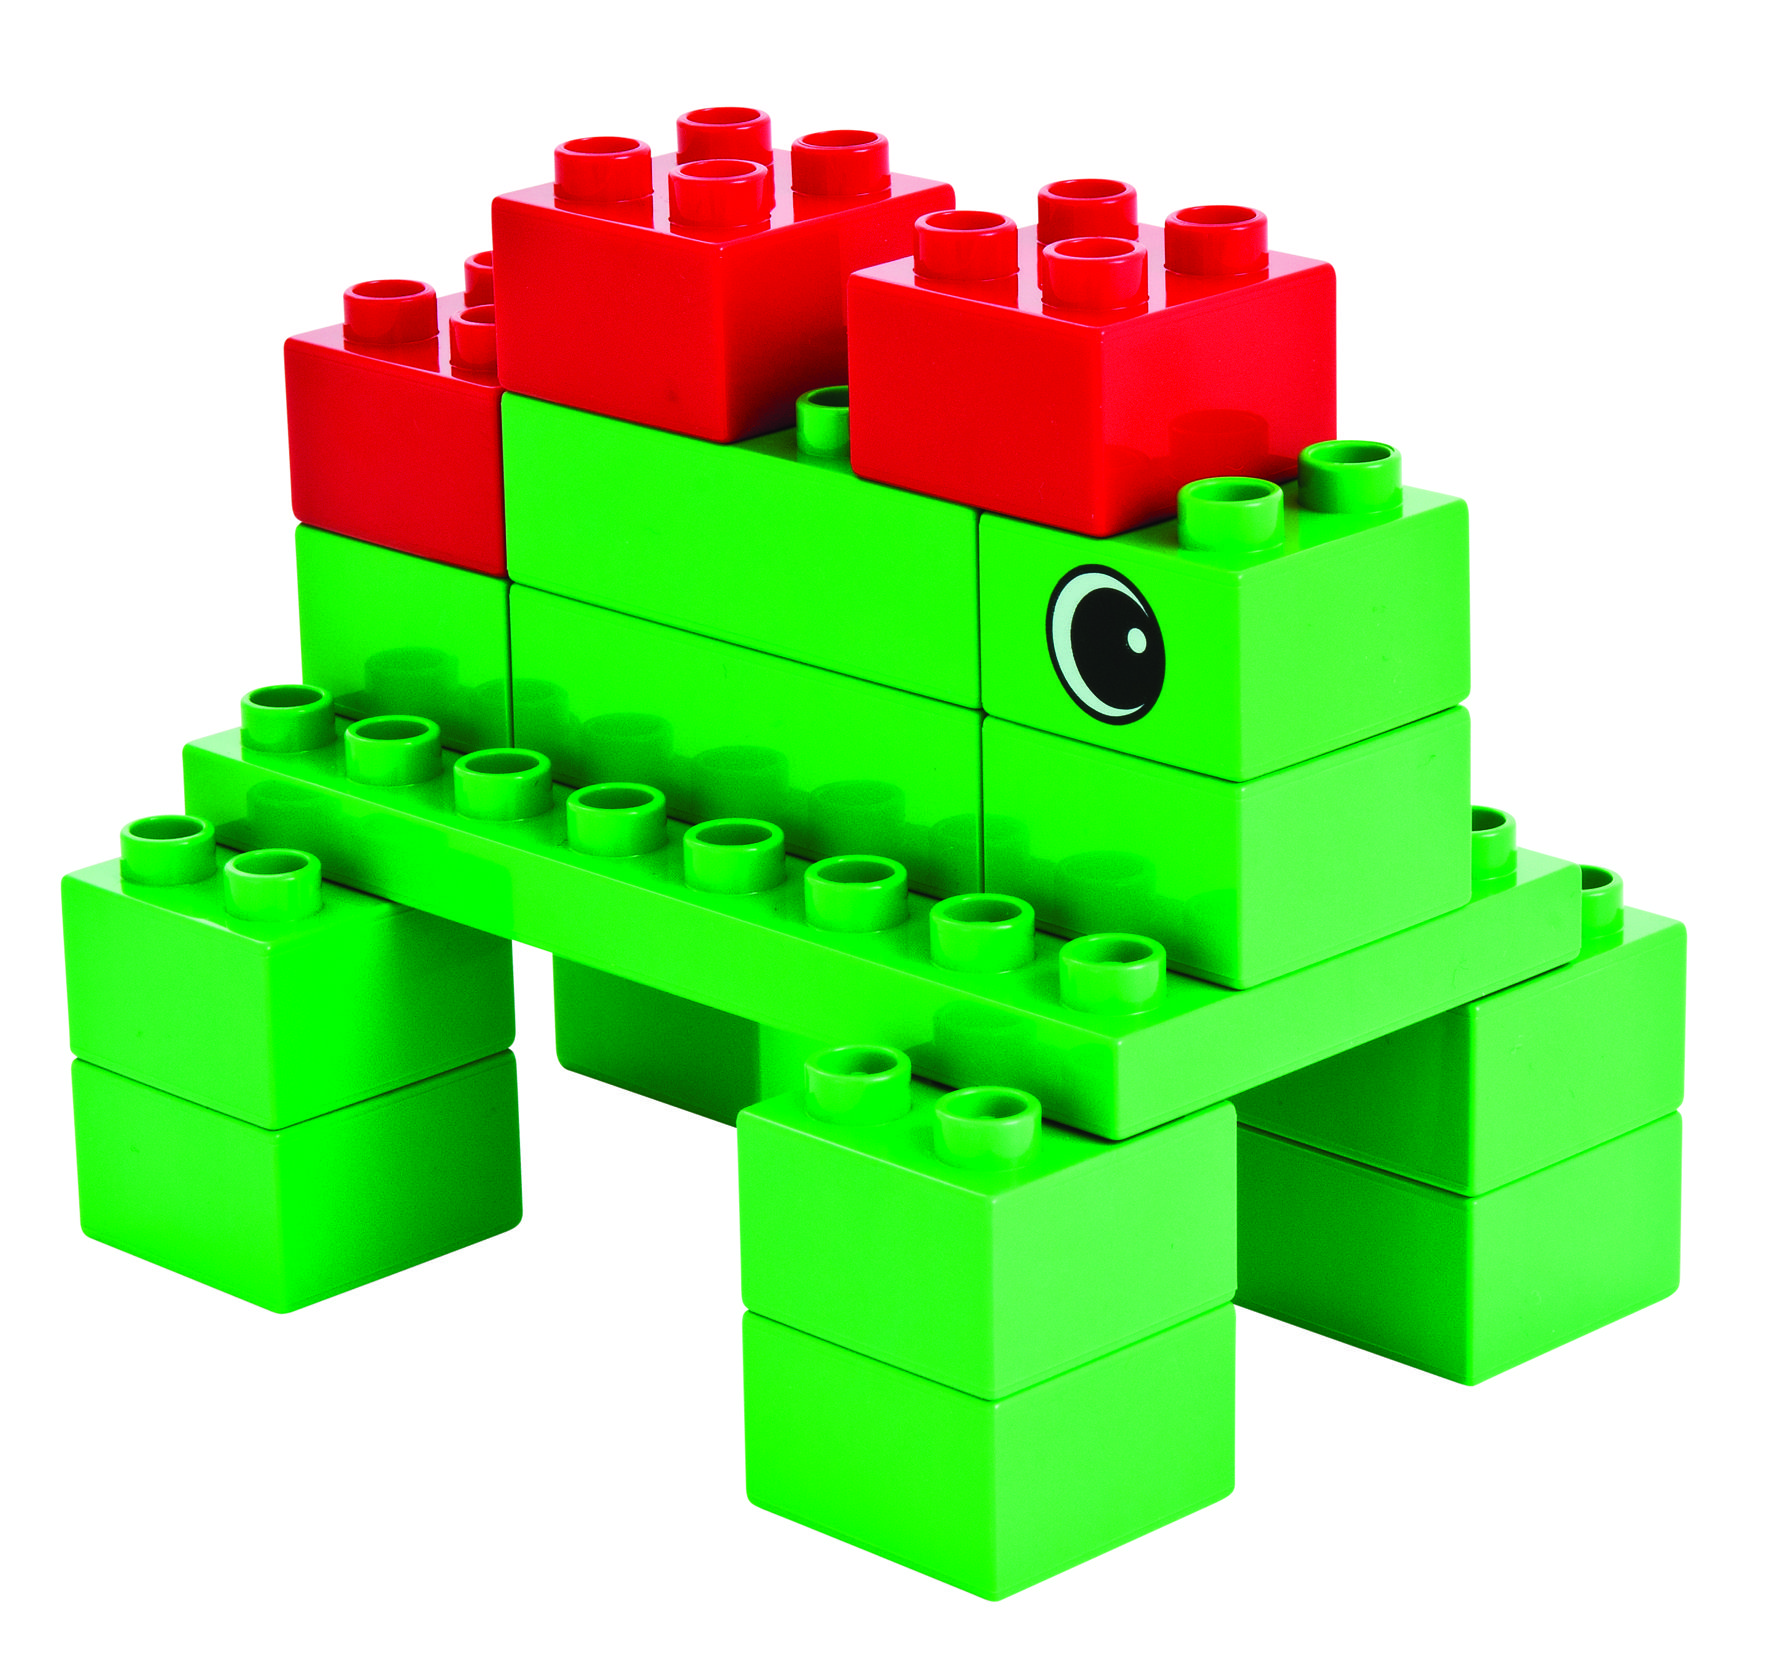 Lego Dinosaurs Building Set List: What Kind Of Dinosaur Can You Build With LEGO Duplo